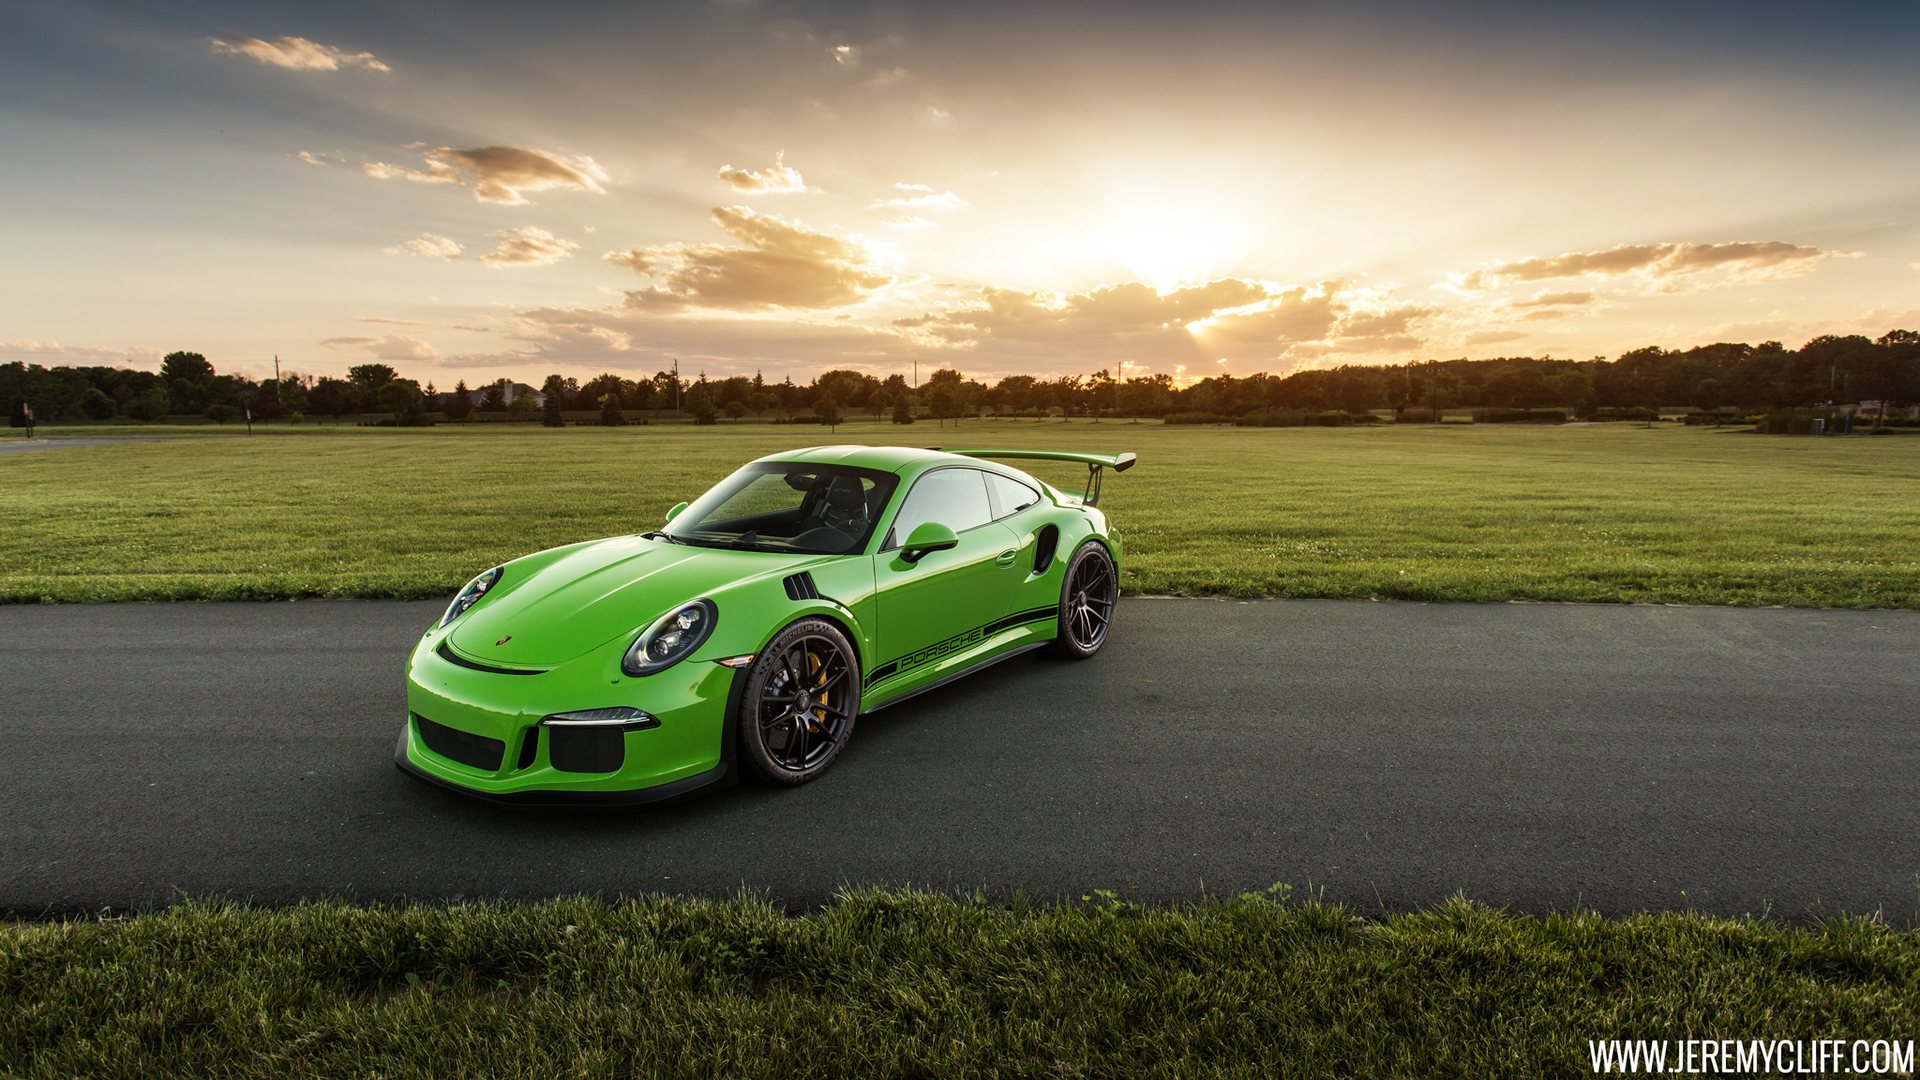 1920x1080 Porsche 911 Gt3 Rs Laptop Full Hd 1080p Hd 4k Wallpapers Images Backgrounds Photos And Pictures